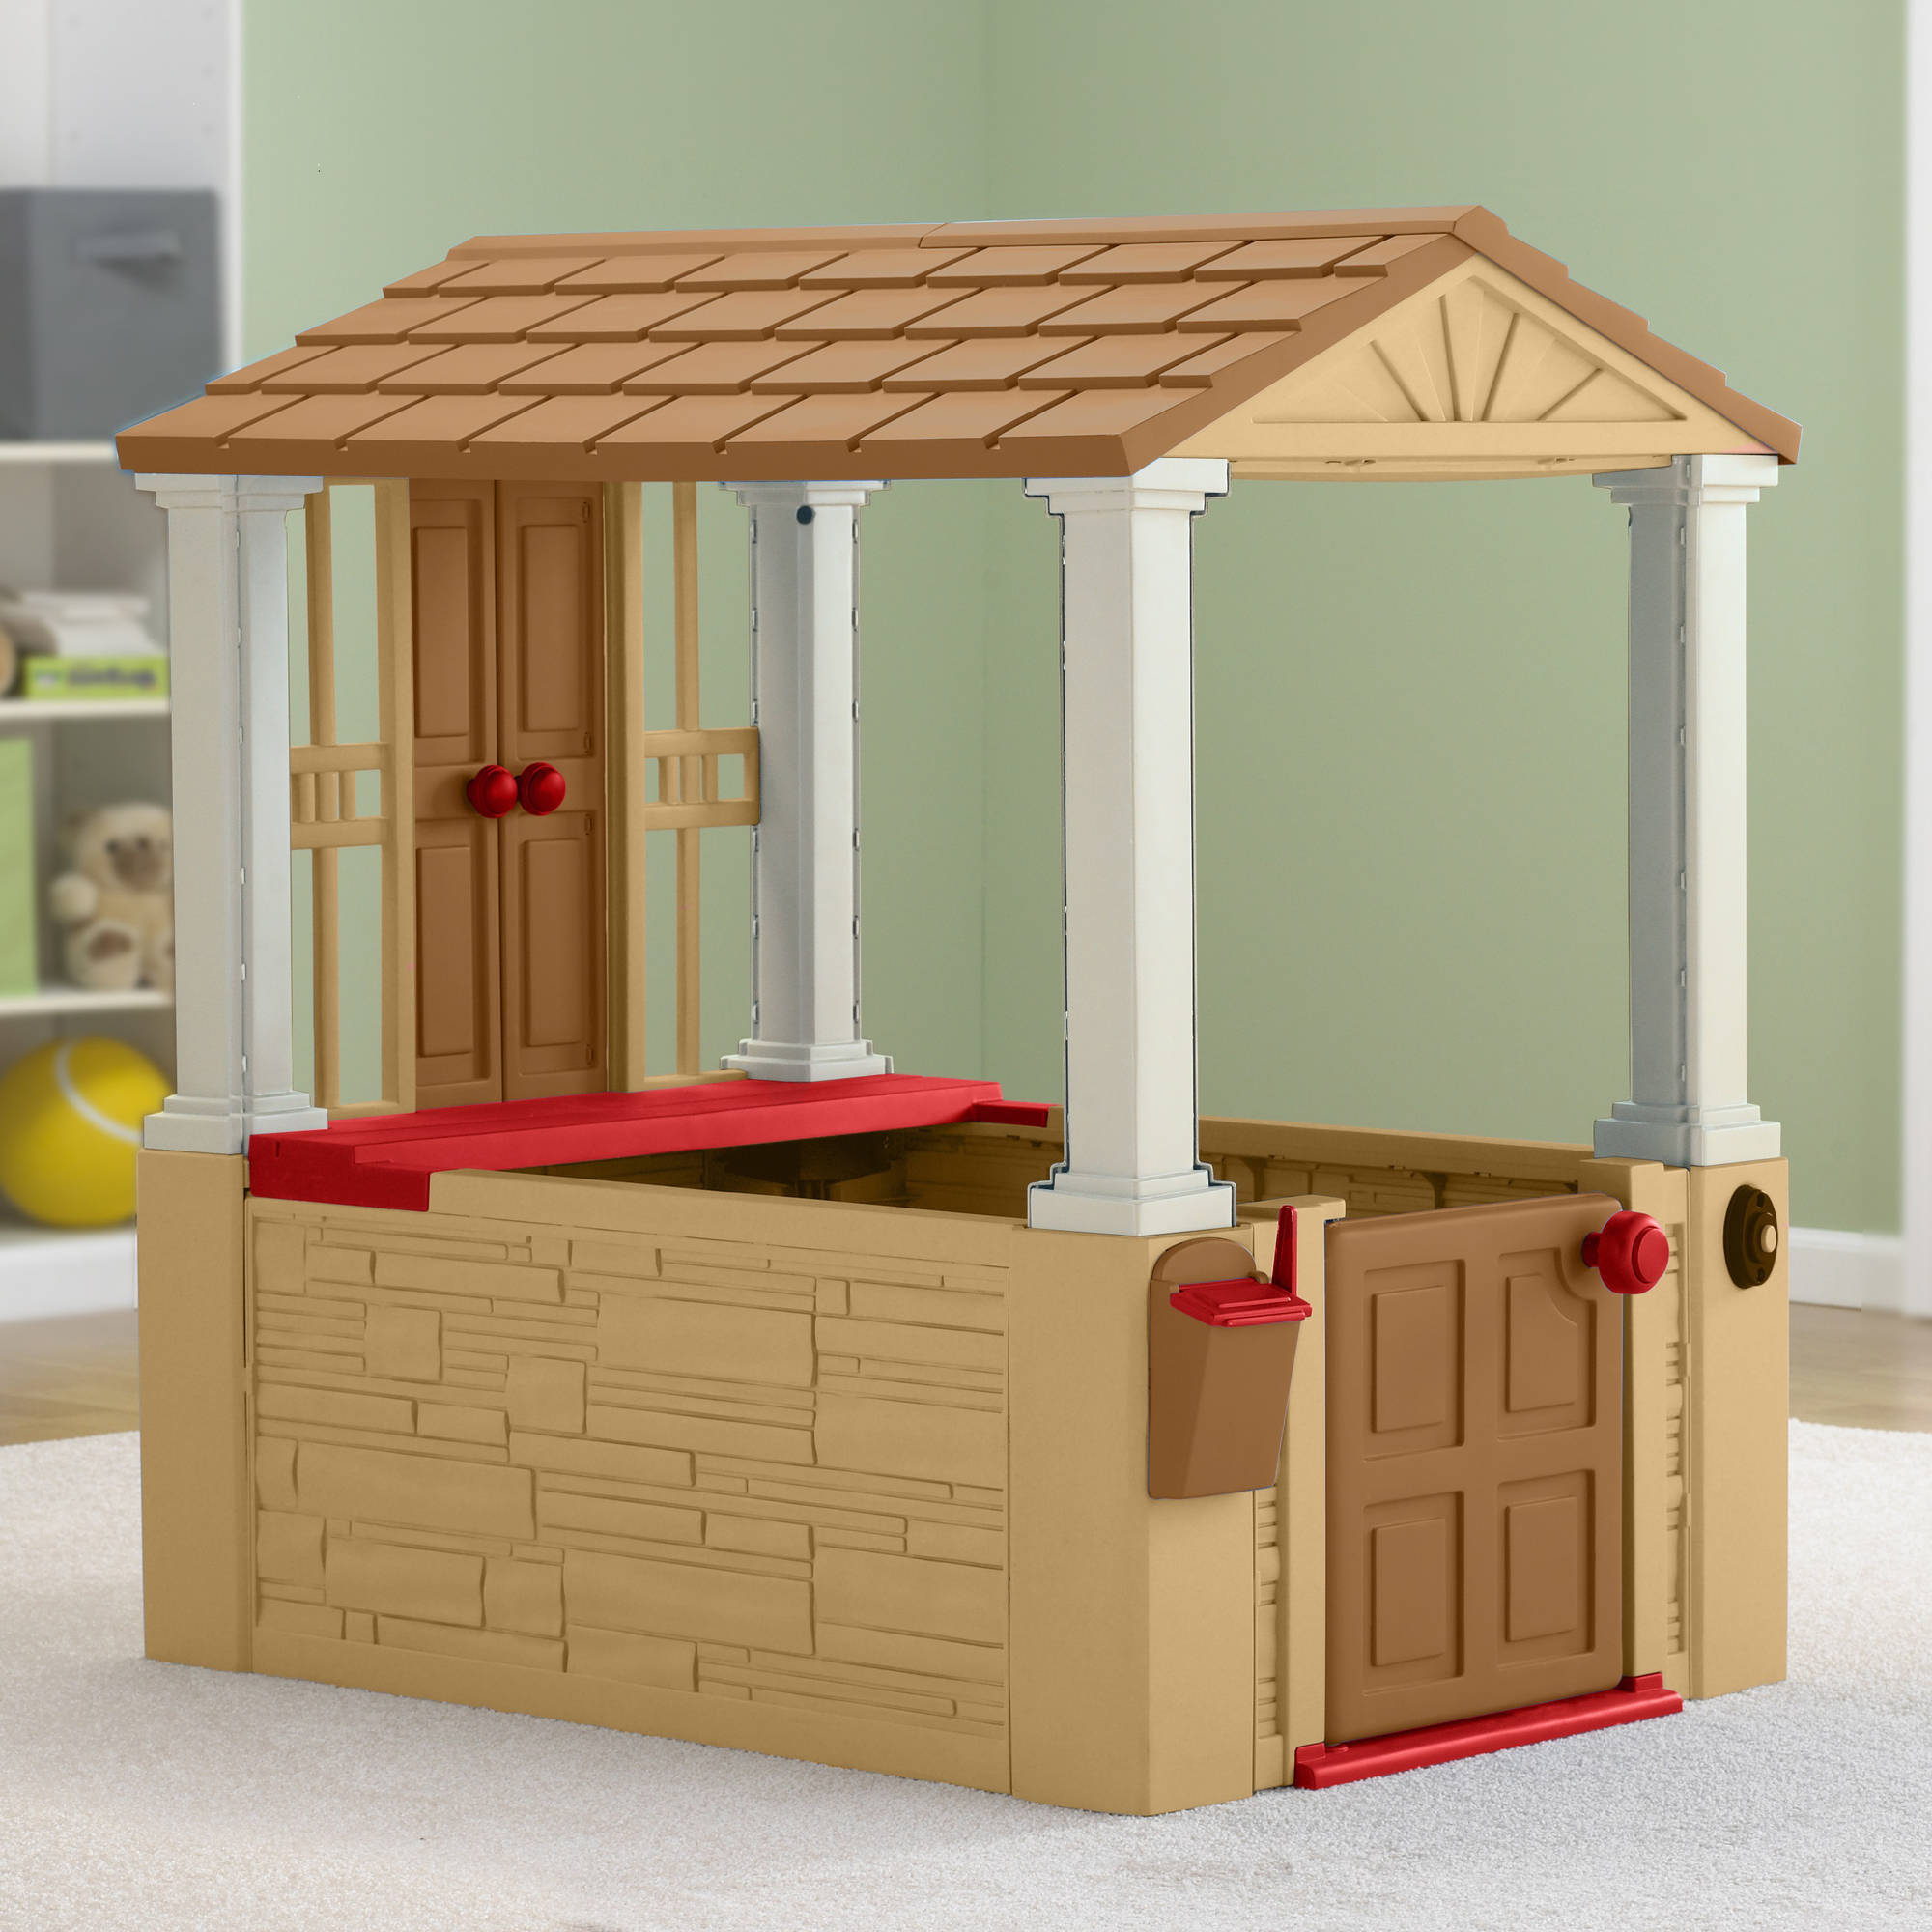 American Plastic Toys Playhouse